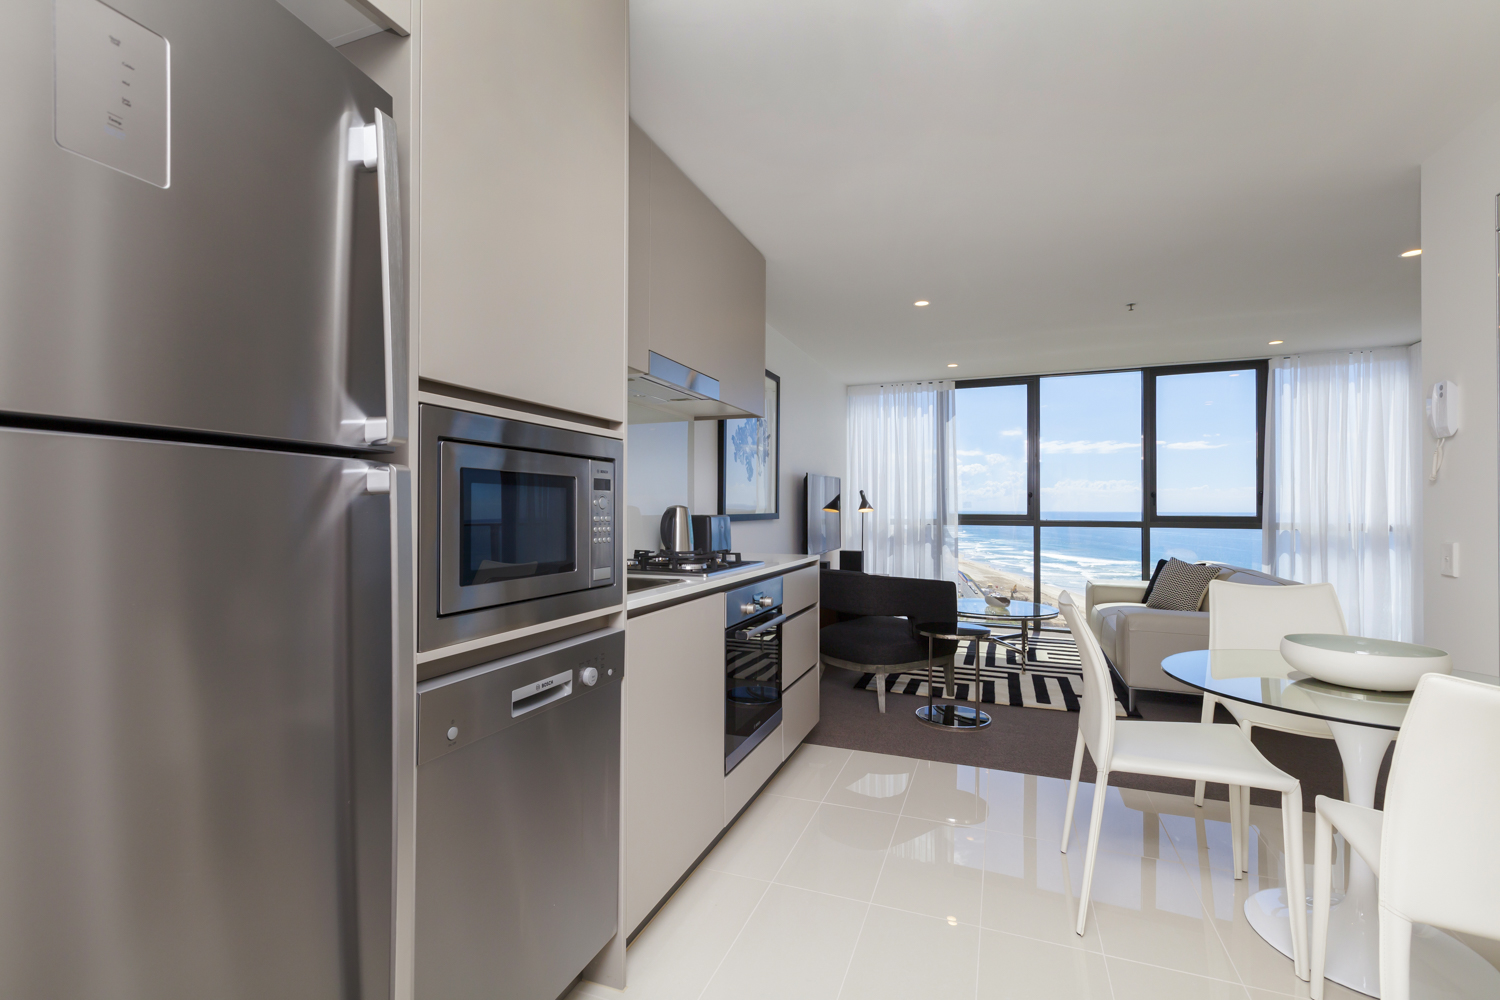 One bedroom ocean view apartment - 1 bedroom apartments everything included ...